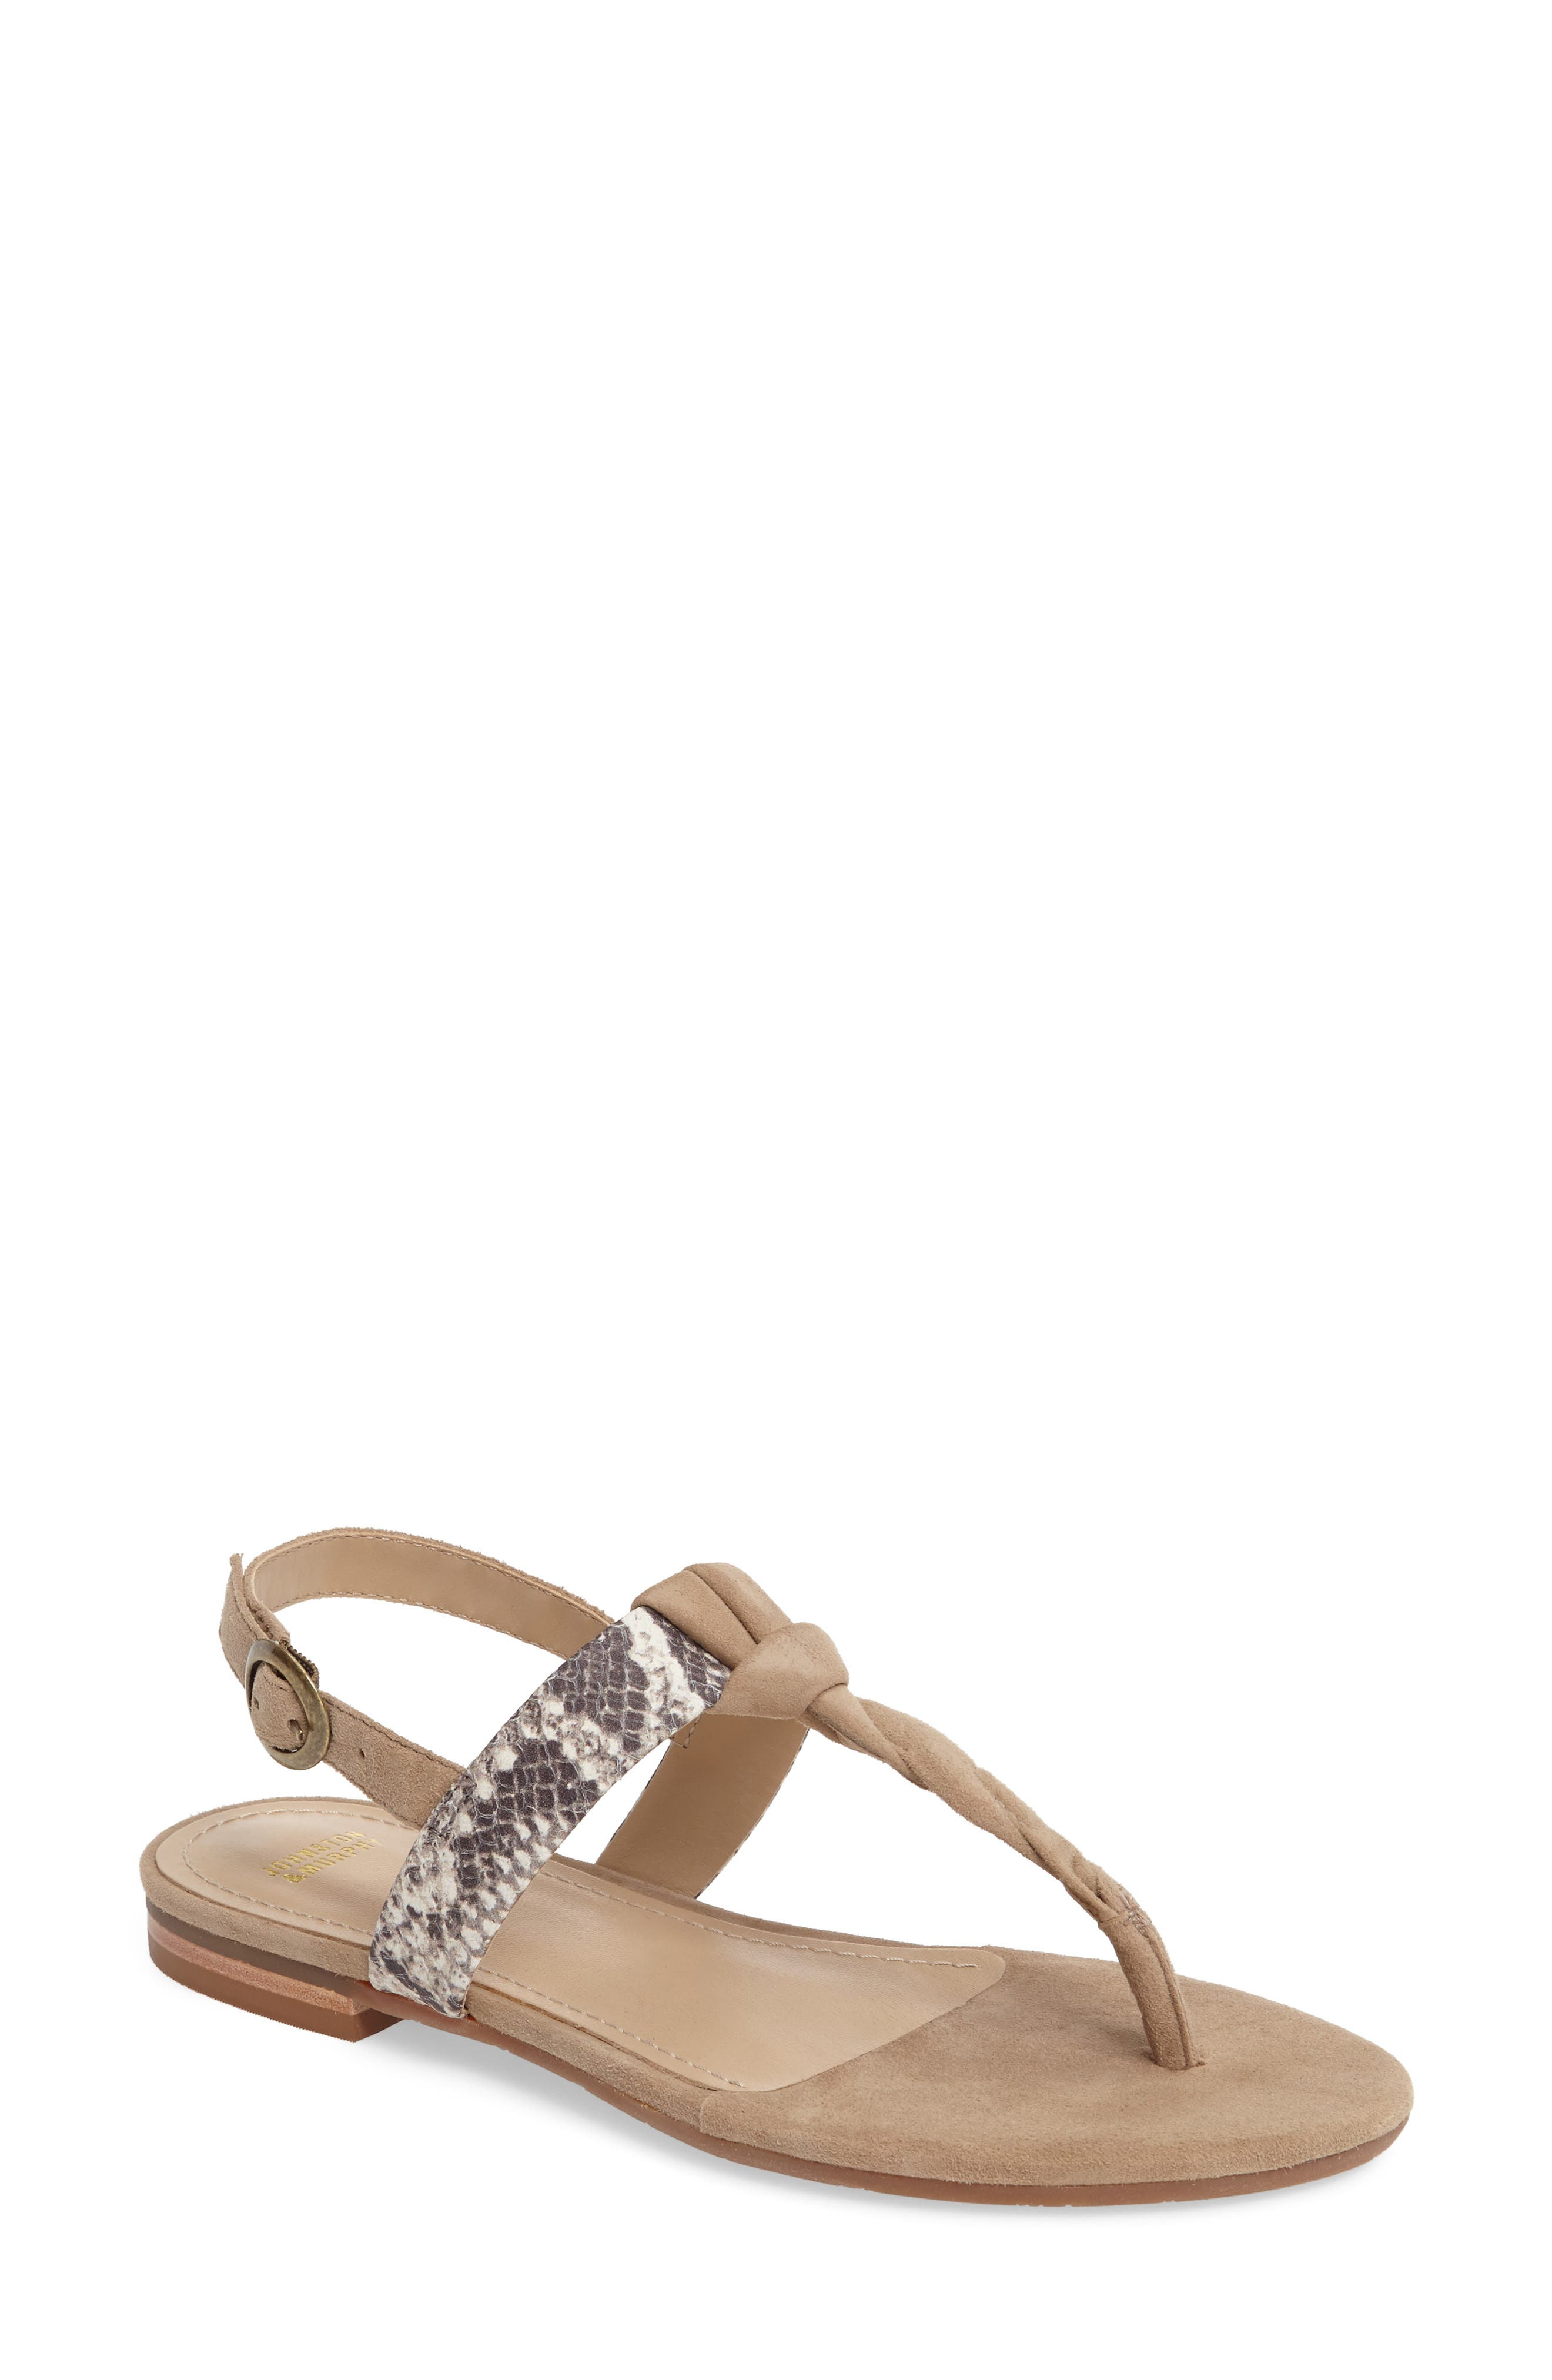 Holly Twisted T-Strap Sandal,                             Main thumbnail 3, color,